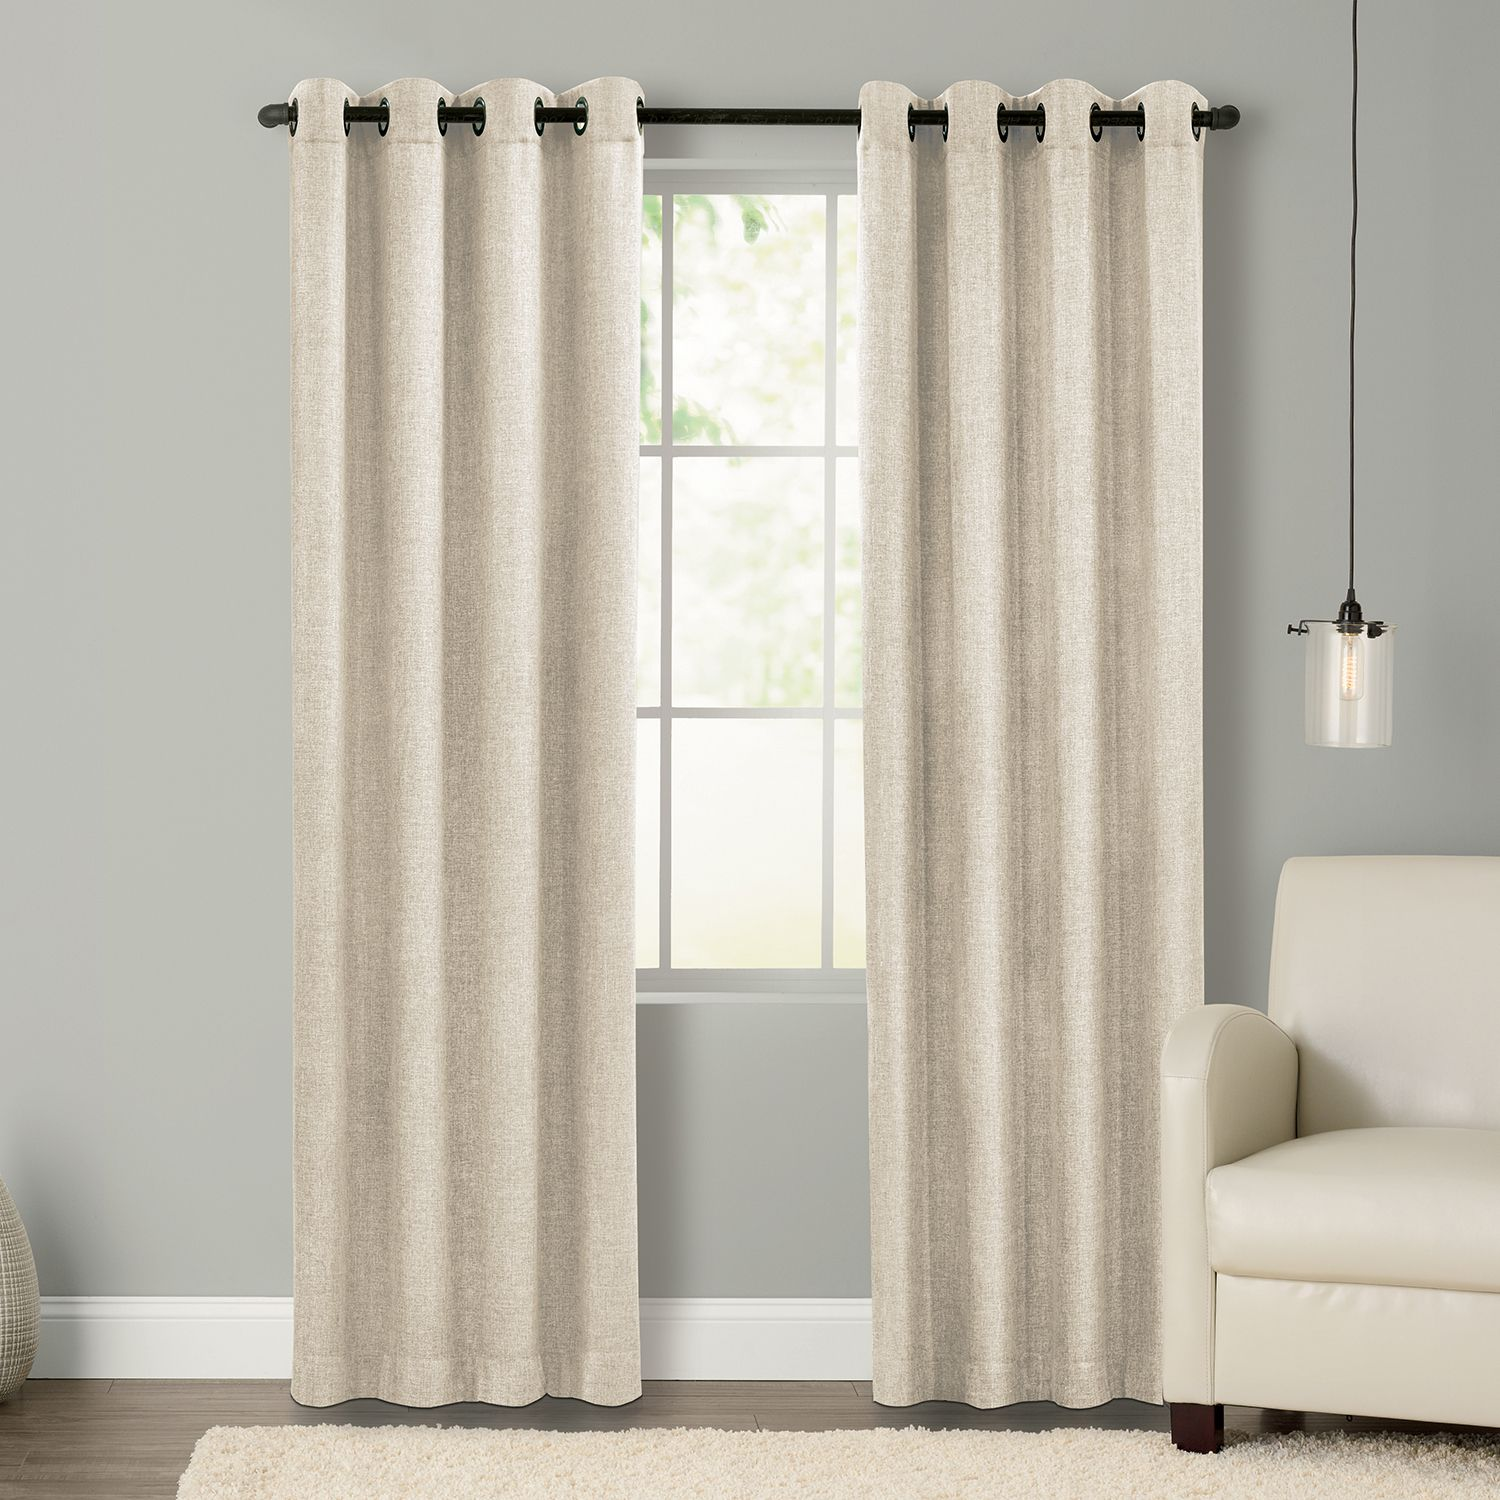 sonoma goods for life dynasty blackout window curtain